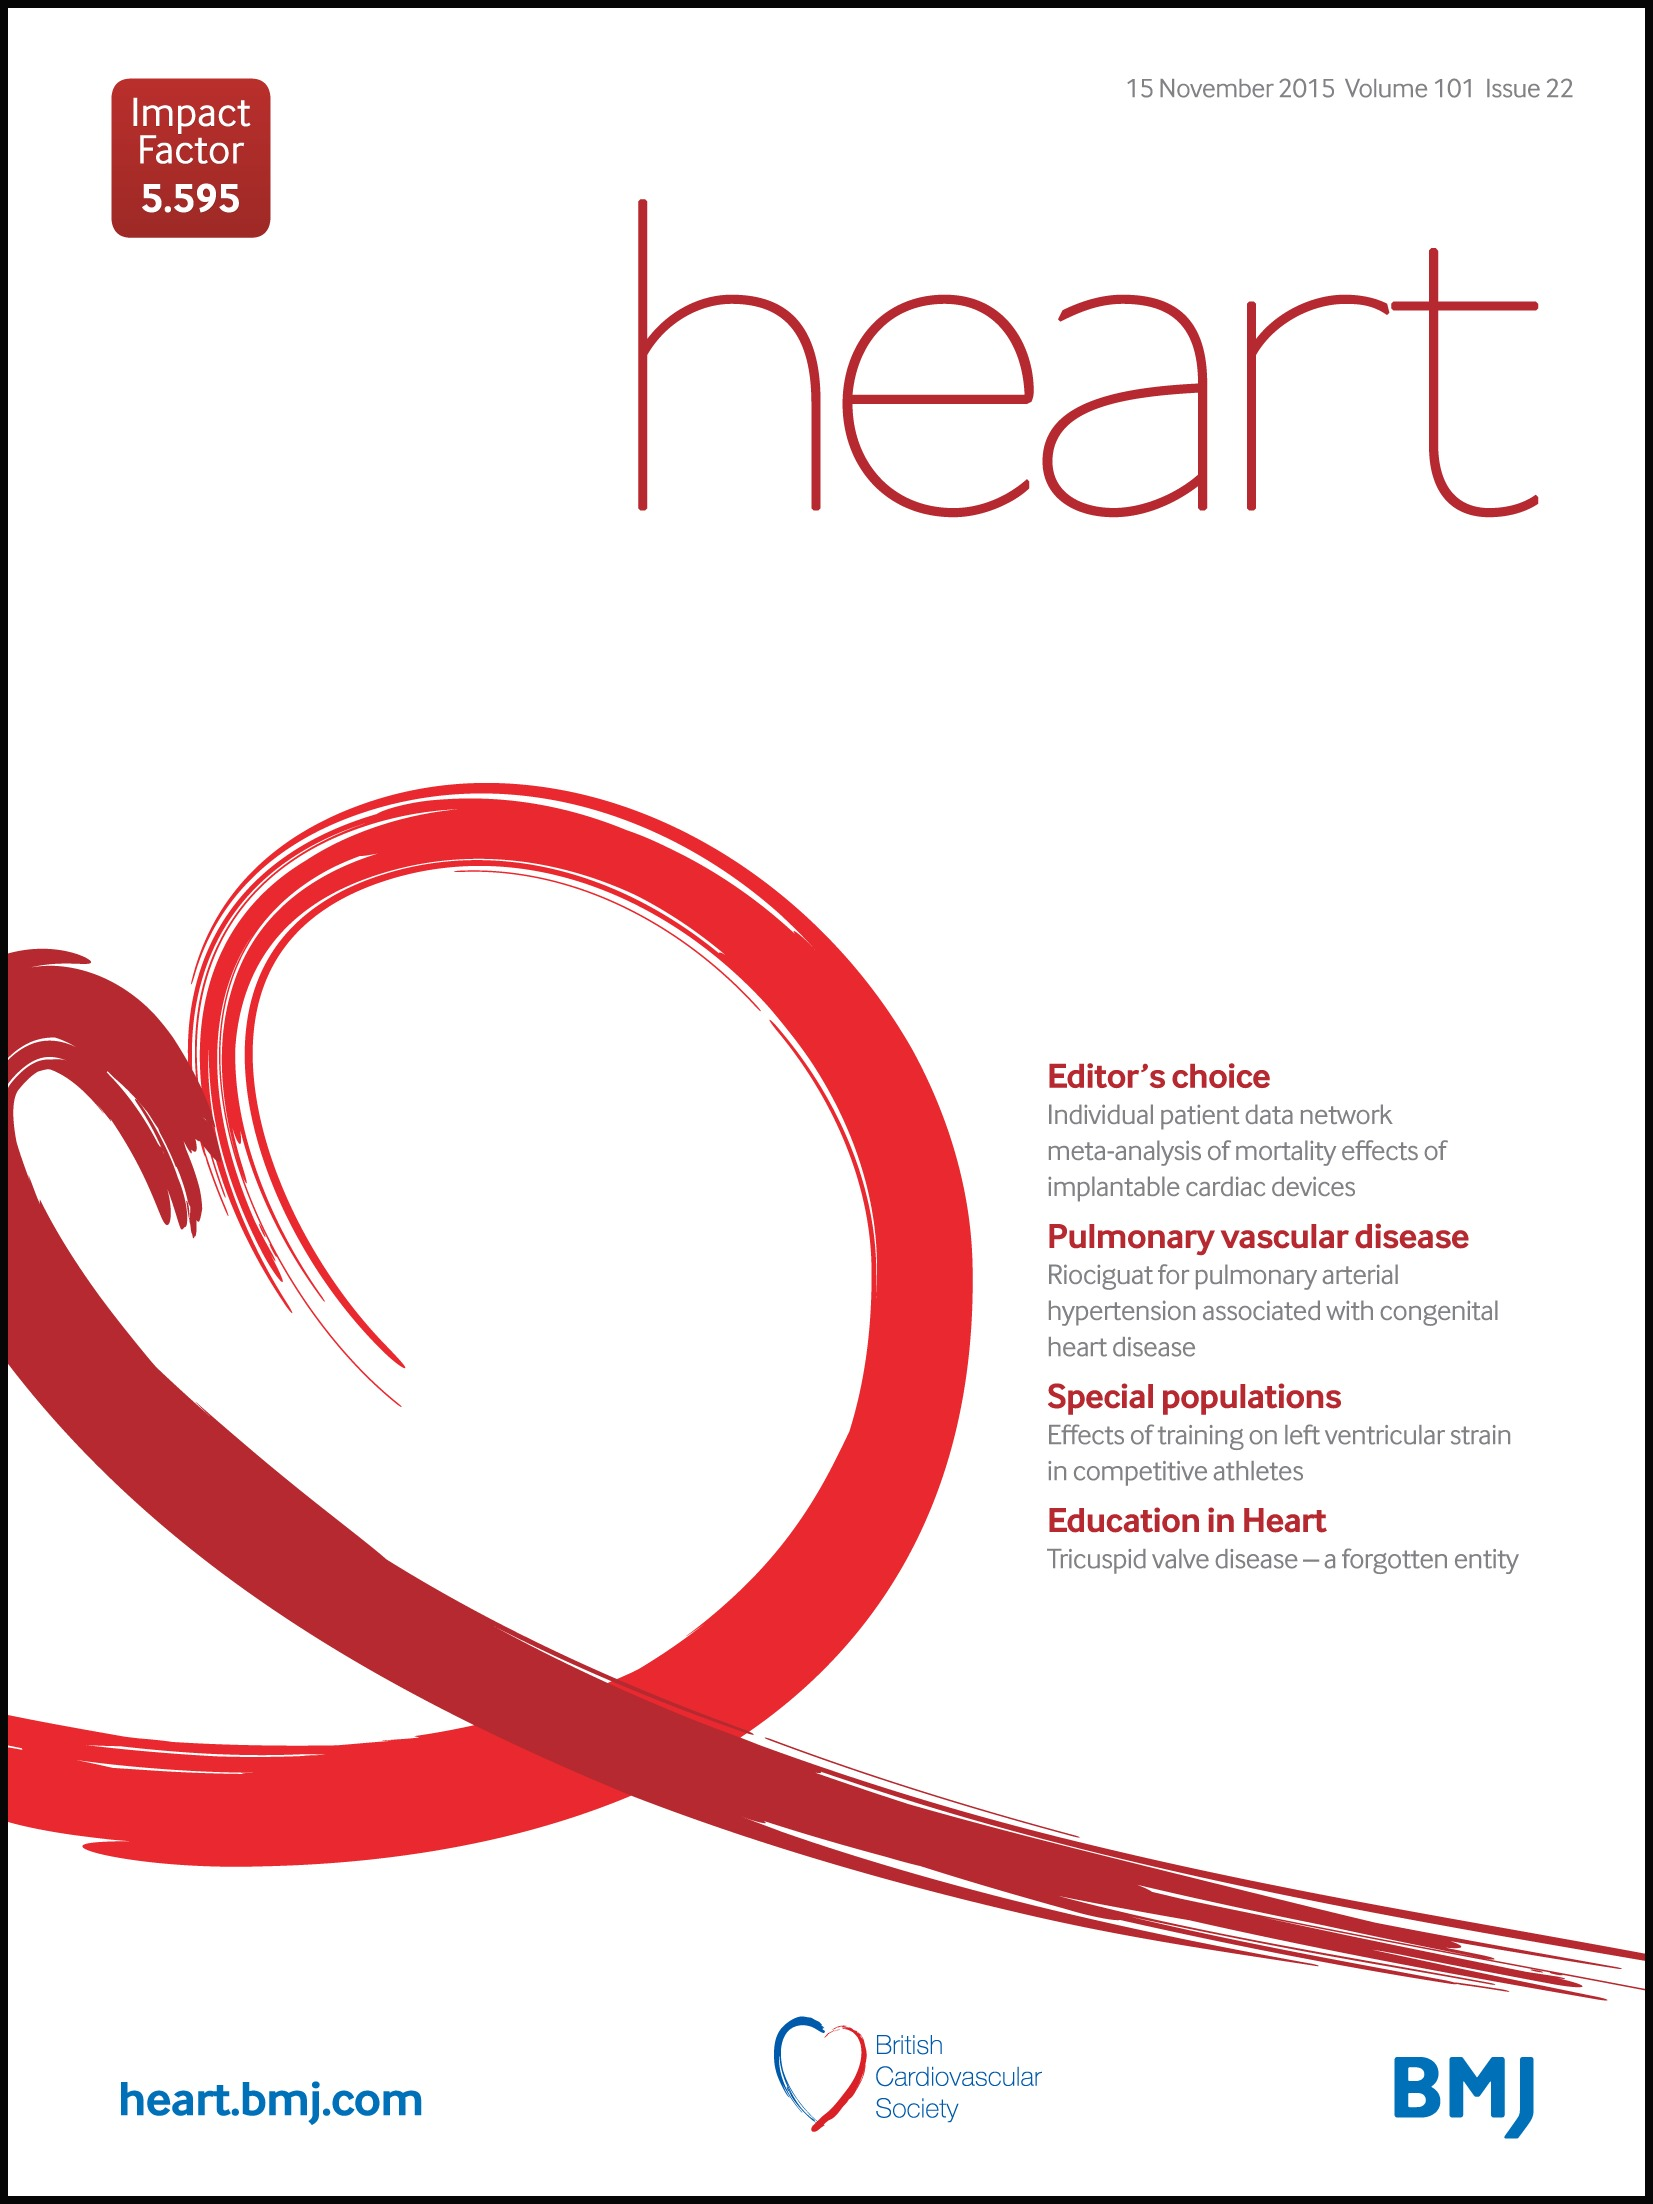 Increased risk of congenital heart disease in twins in the